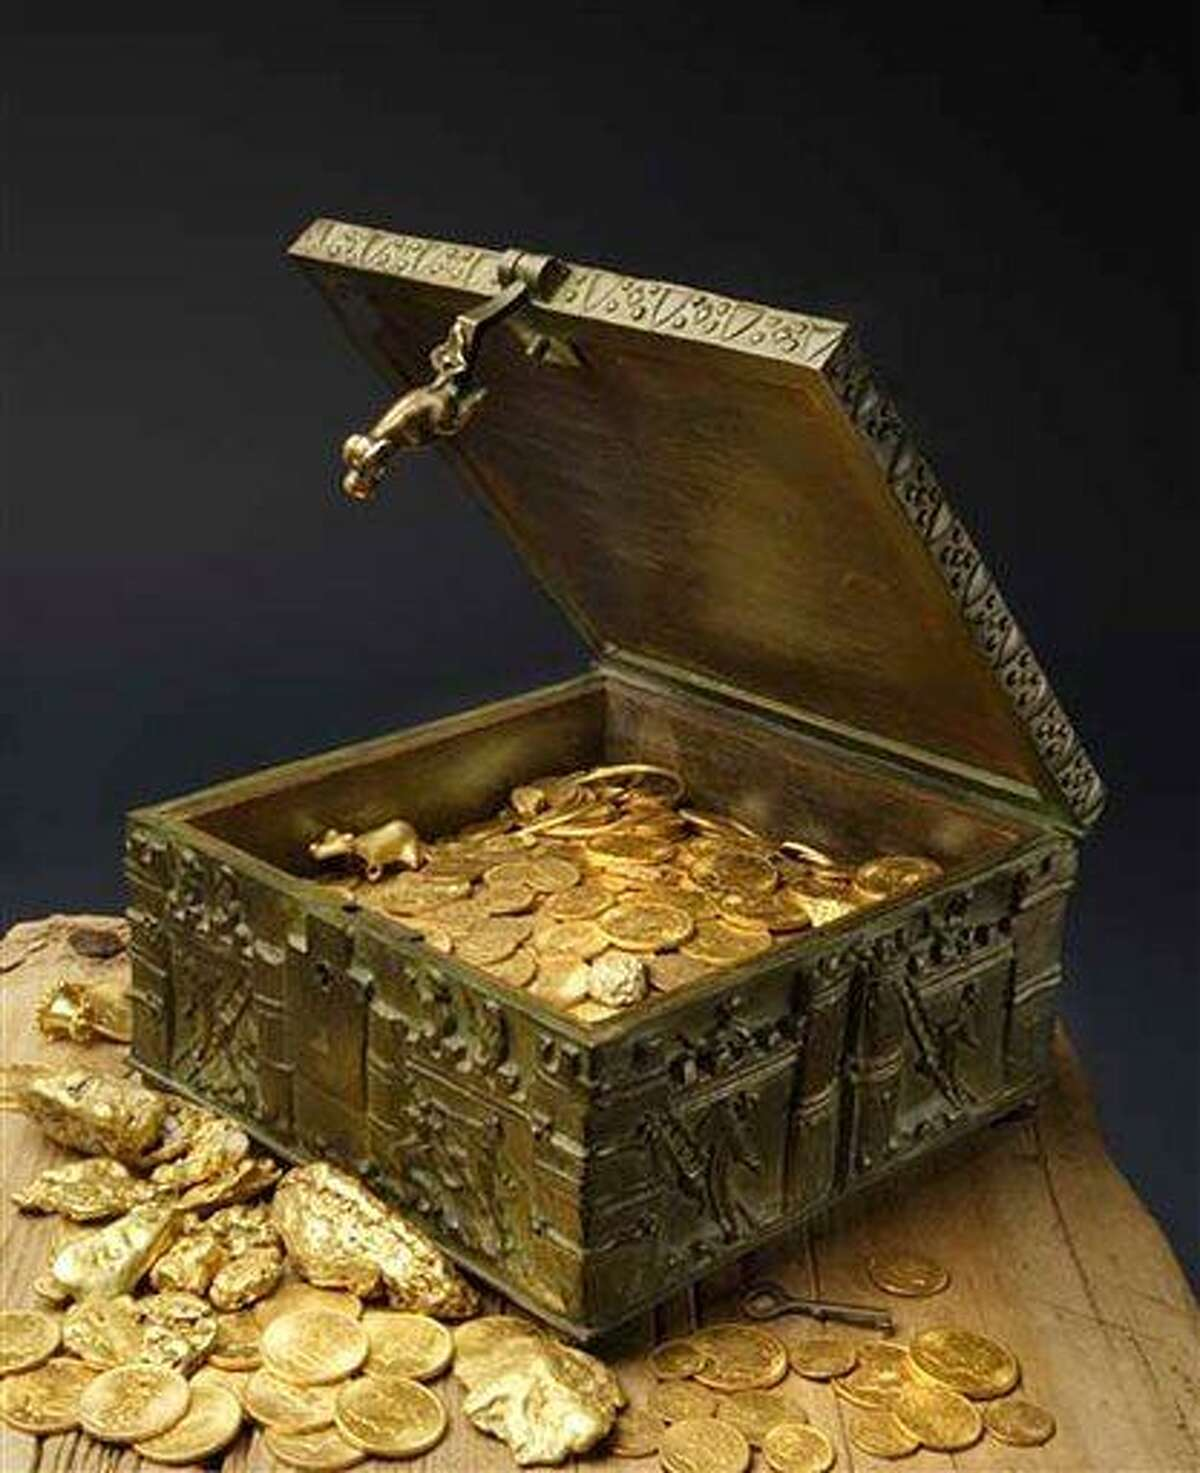 This undated photo provided by Forrest Fenn shows a chest purported to contain gold dust, hundreds of rare gold coins, gold nuggets and other artifacts. For more than a decade, the 82-year-old claims he has packed and repacked the treasure chest, before burying it in the mountains somewhere north of Santa Fe. (AP Photo/Jeri Clausing)